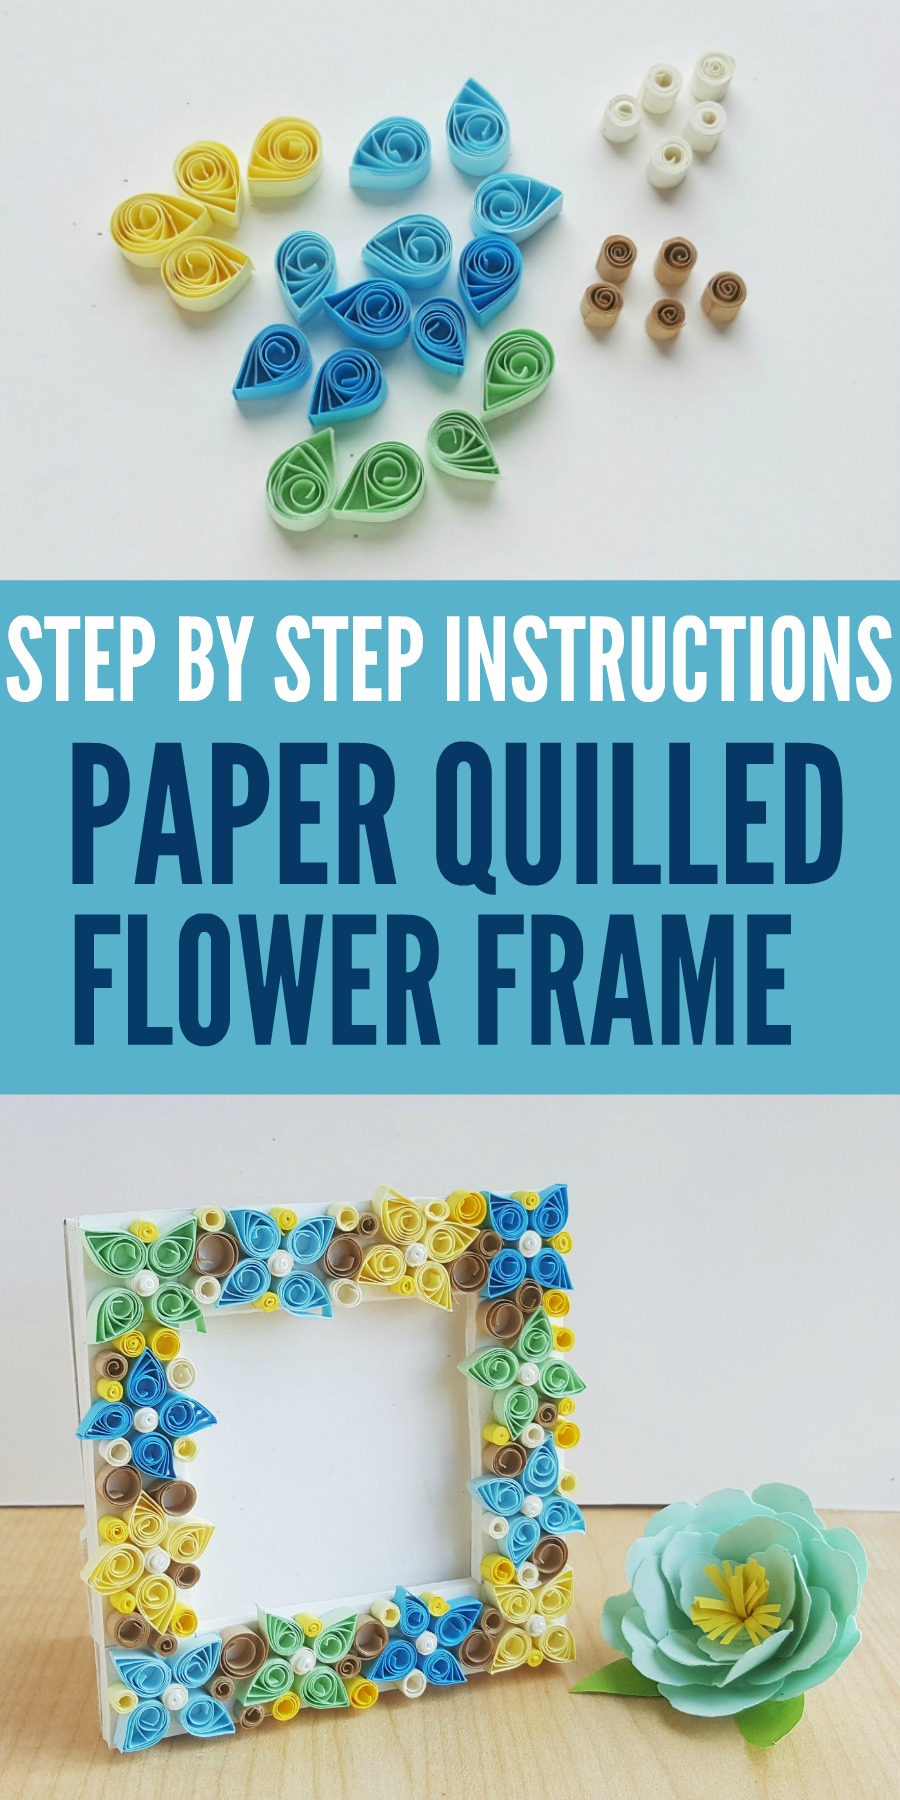 Paper quilling flower frame diy step by step instructions paper quilled flower frame with step by step instructions mightylinksfo